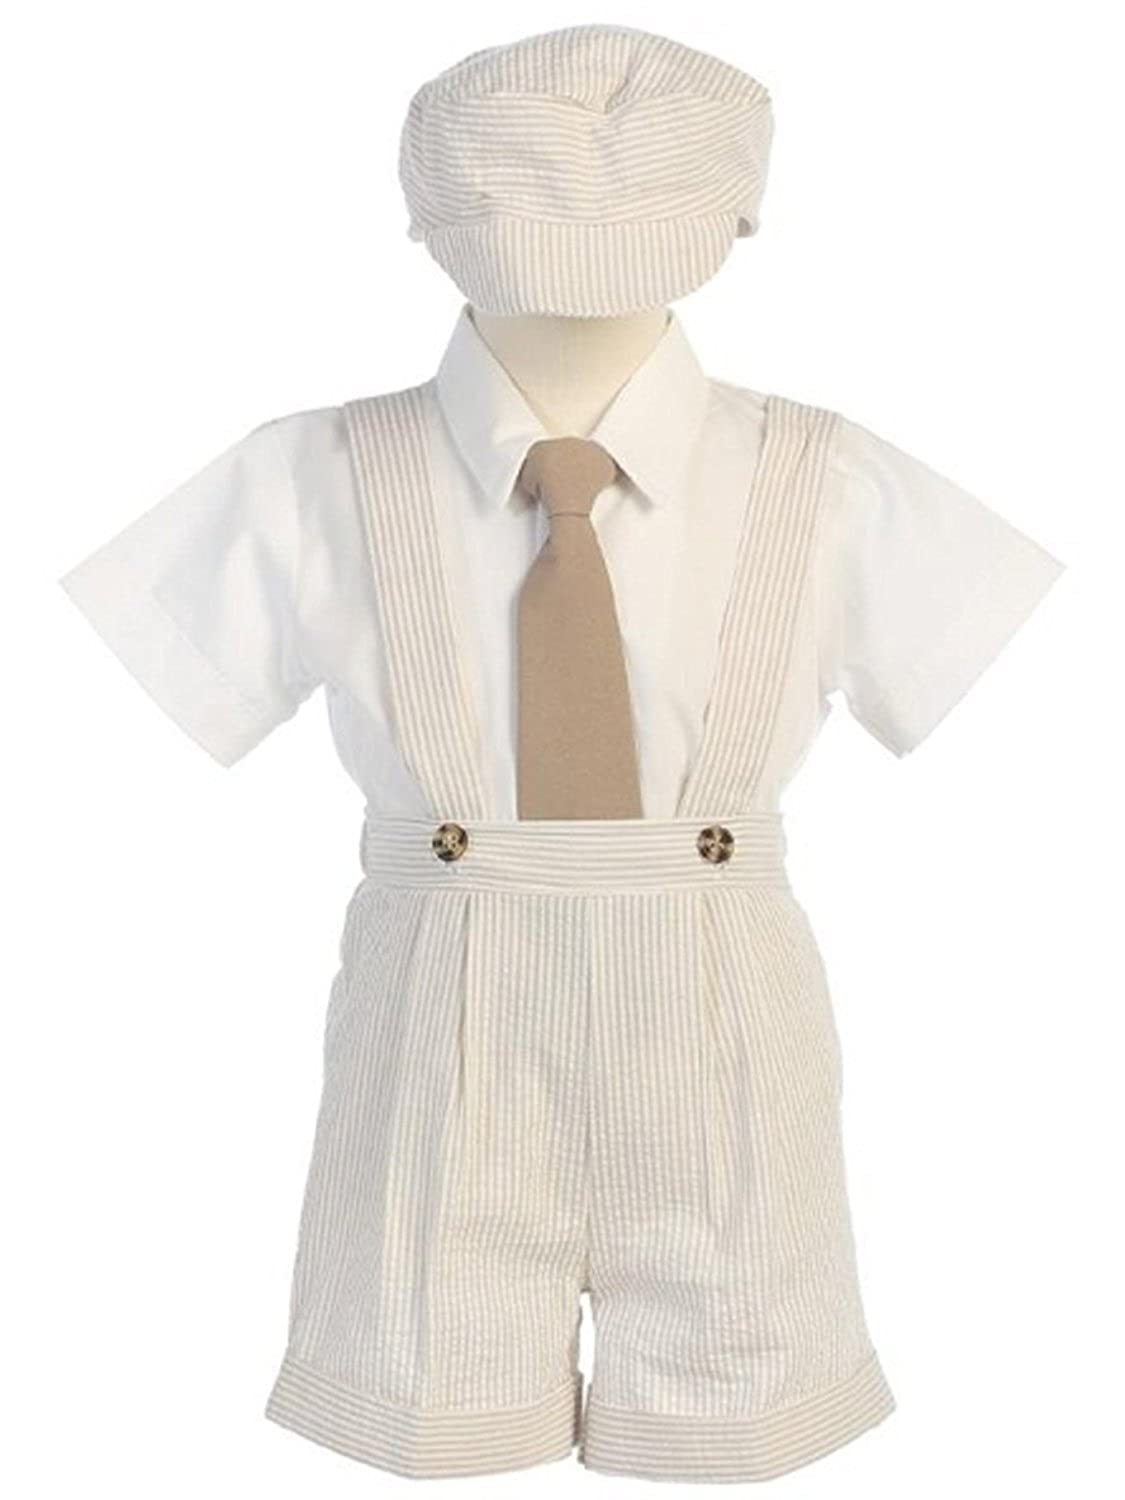 Victorian Kids Costumes & Shoes- Girls, Boys, Baby, Toddler DapperLads Lito Little Boys Khaki Seersucker 4 Pc Suspender Shorts $35.98 AT vintagedancer.com